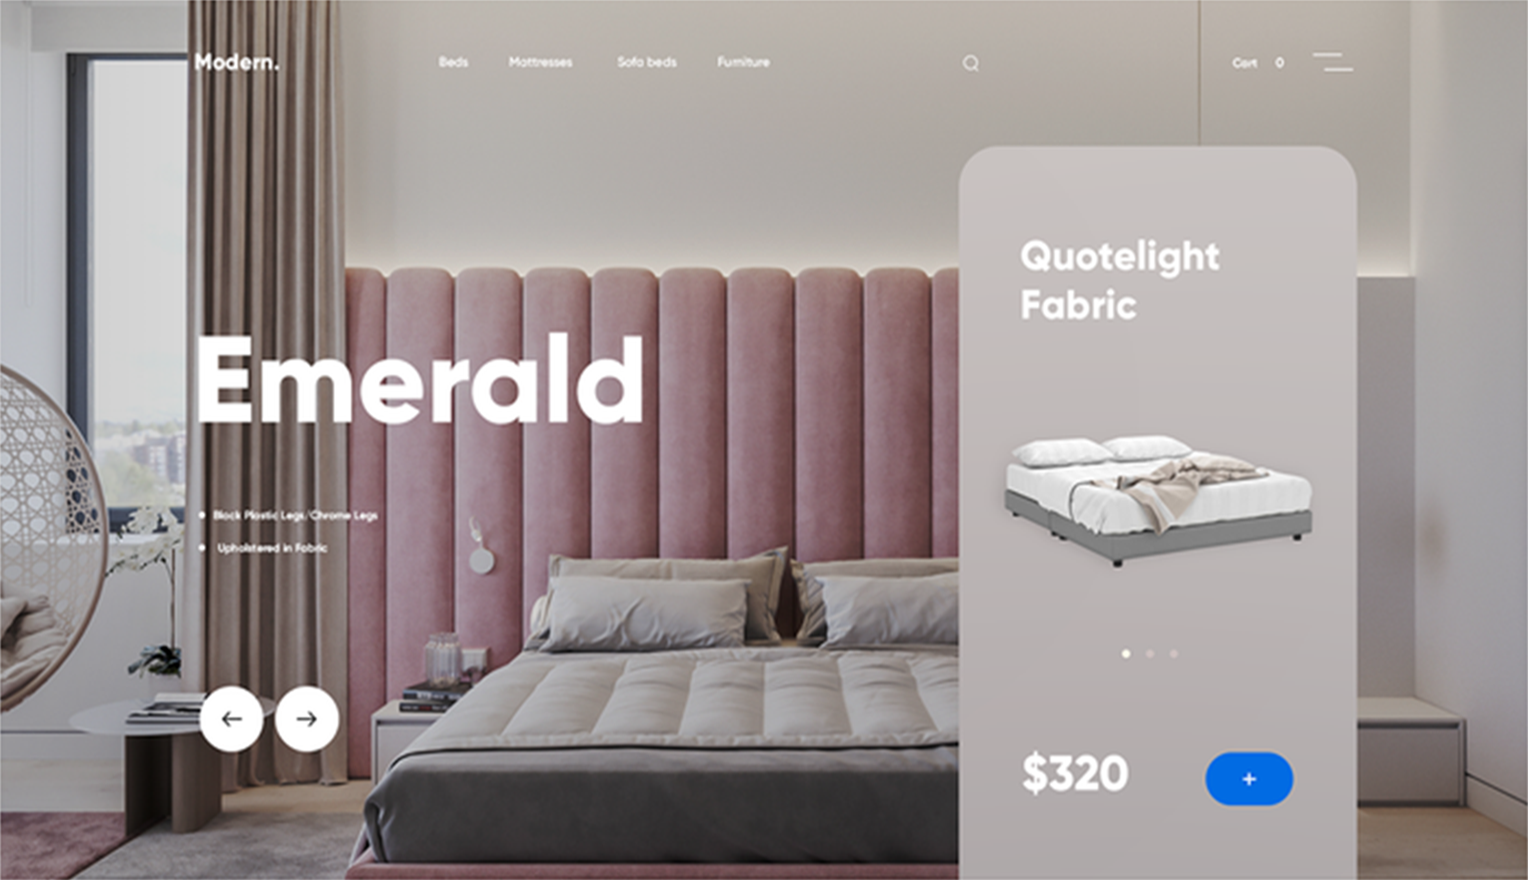 example of header image size in Shopify store